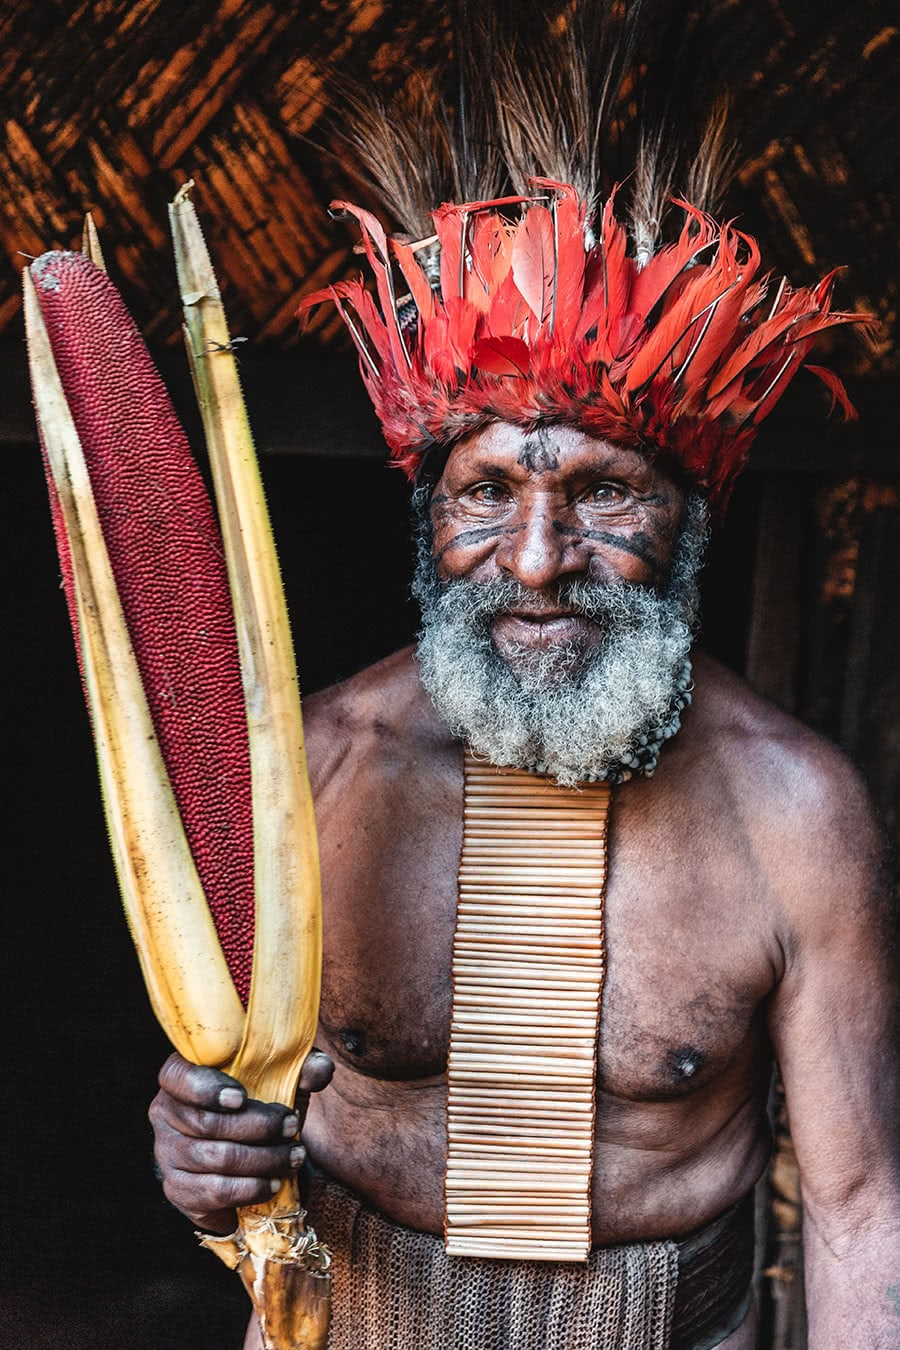 A man from the Nogopa tribe in Tokua village, near Mount Hagen, Papua New Guinea.